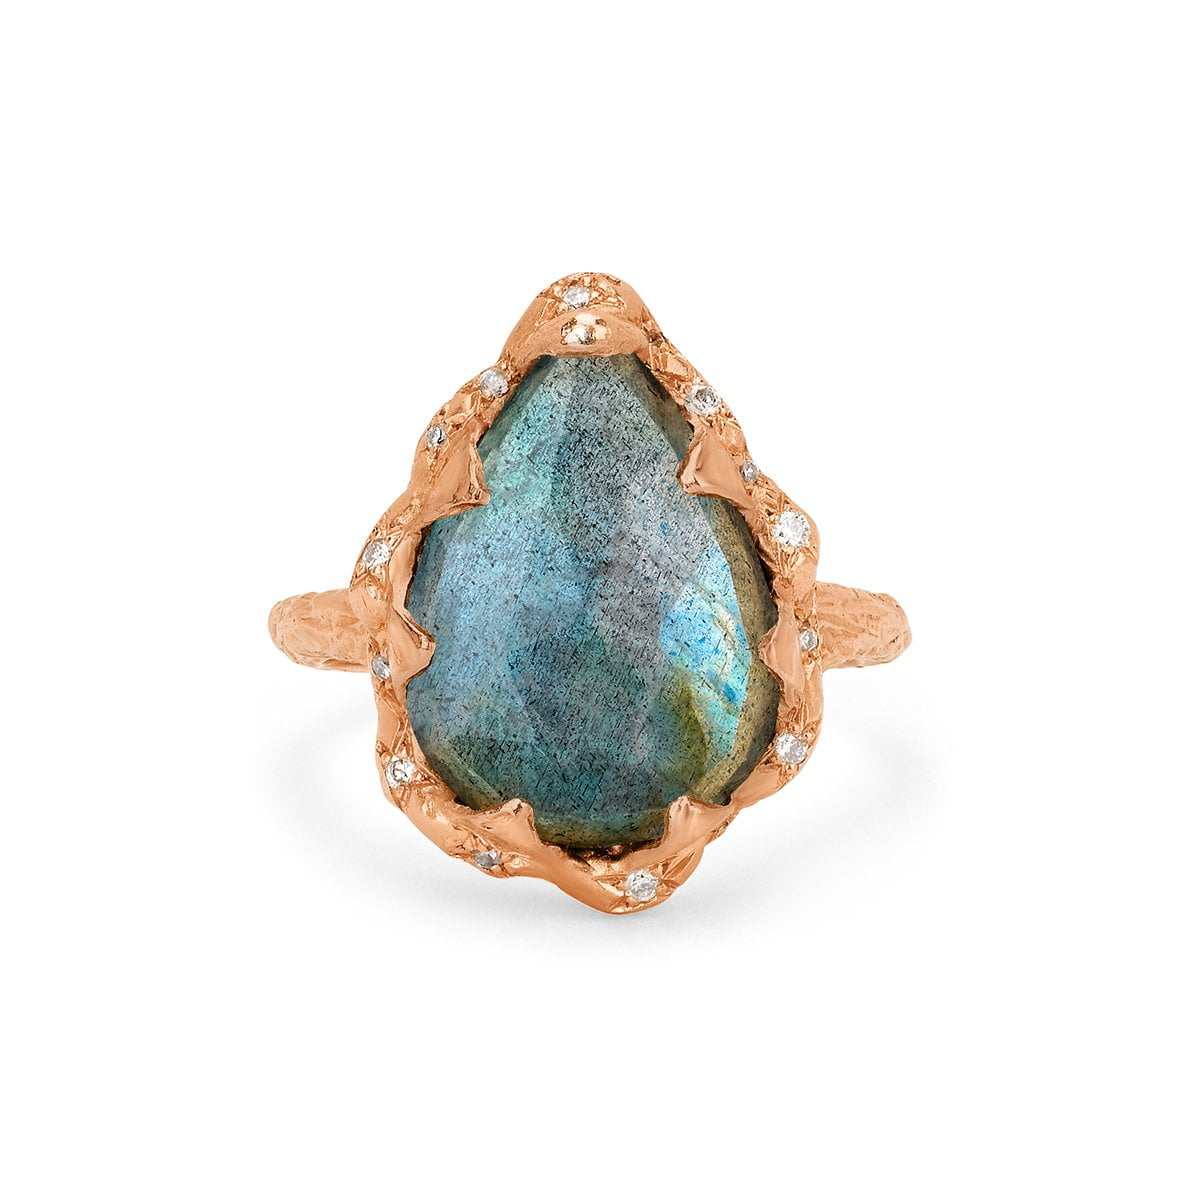 Queen Water Drop Labradorite Ring with Sprinkled Diamonds